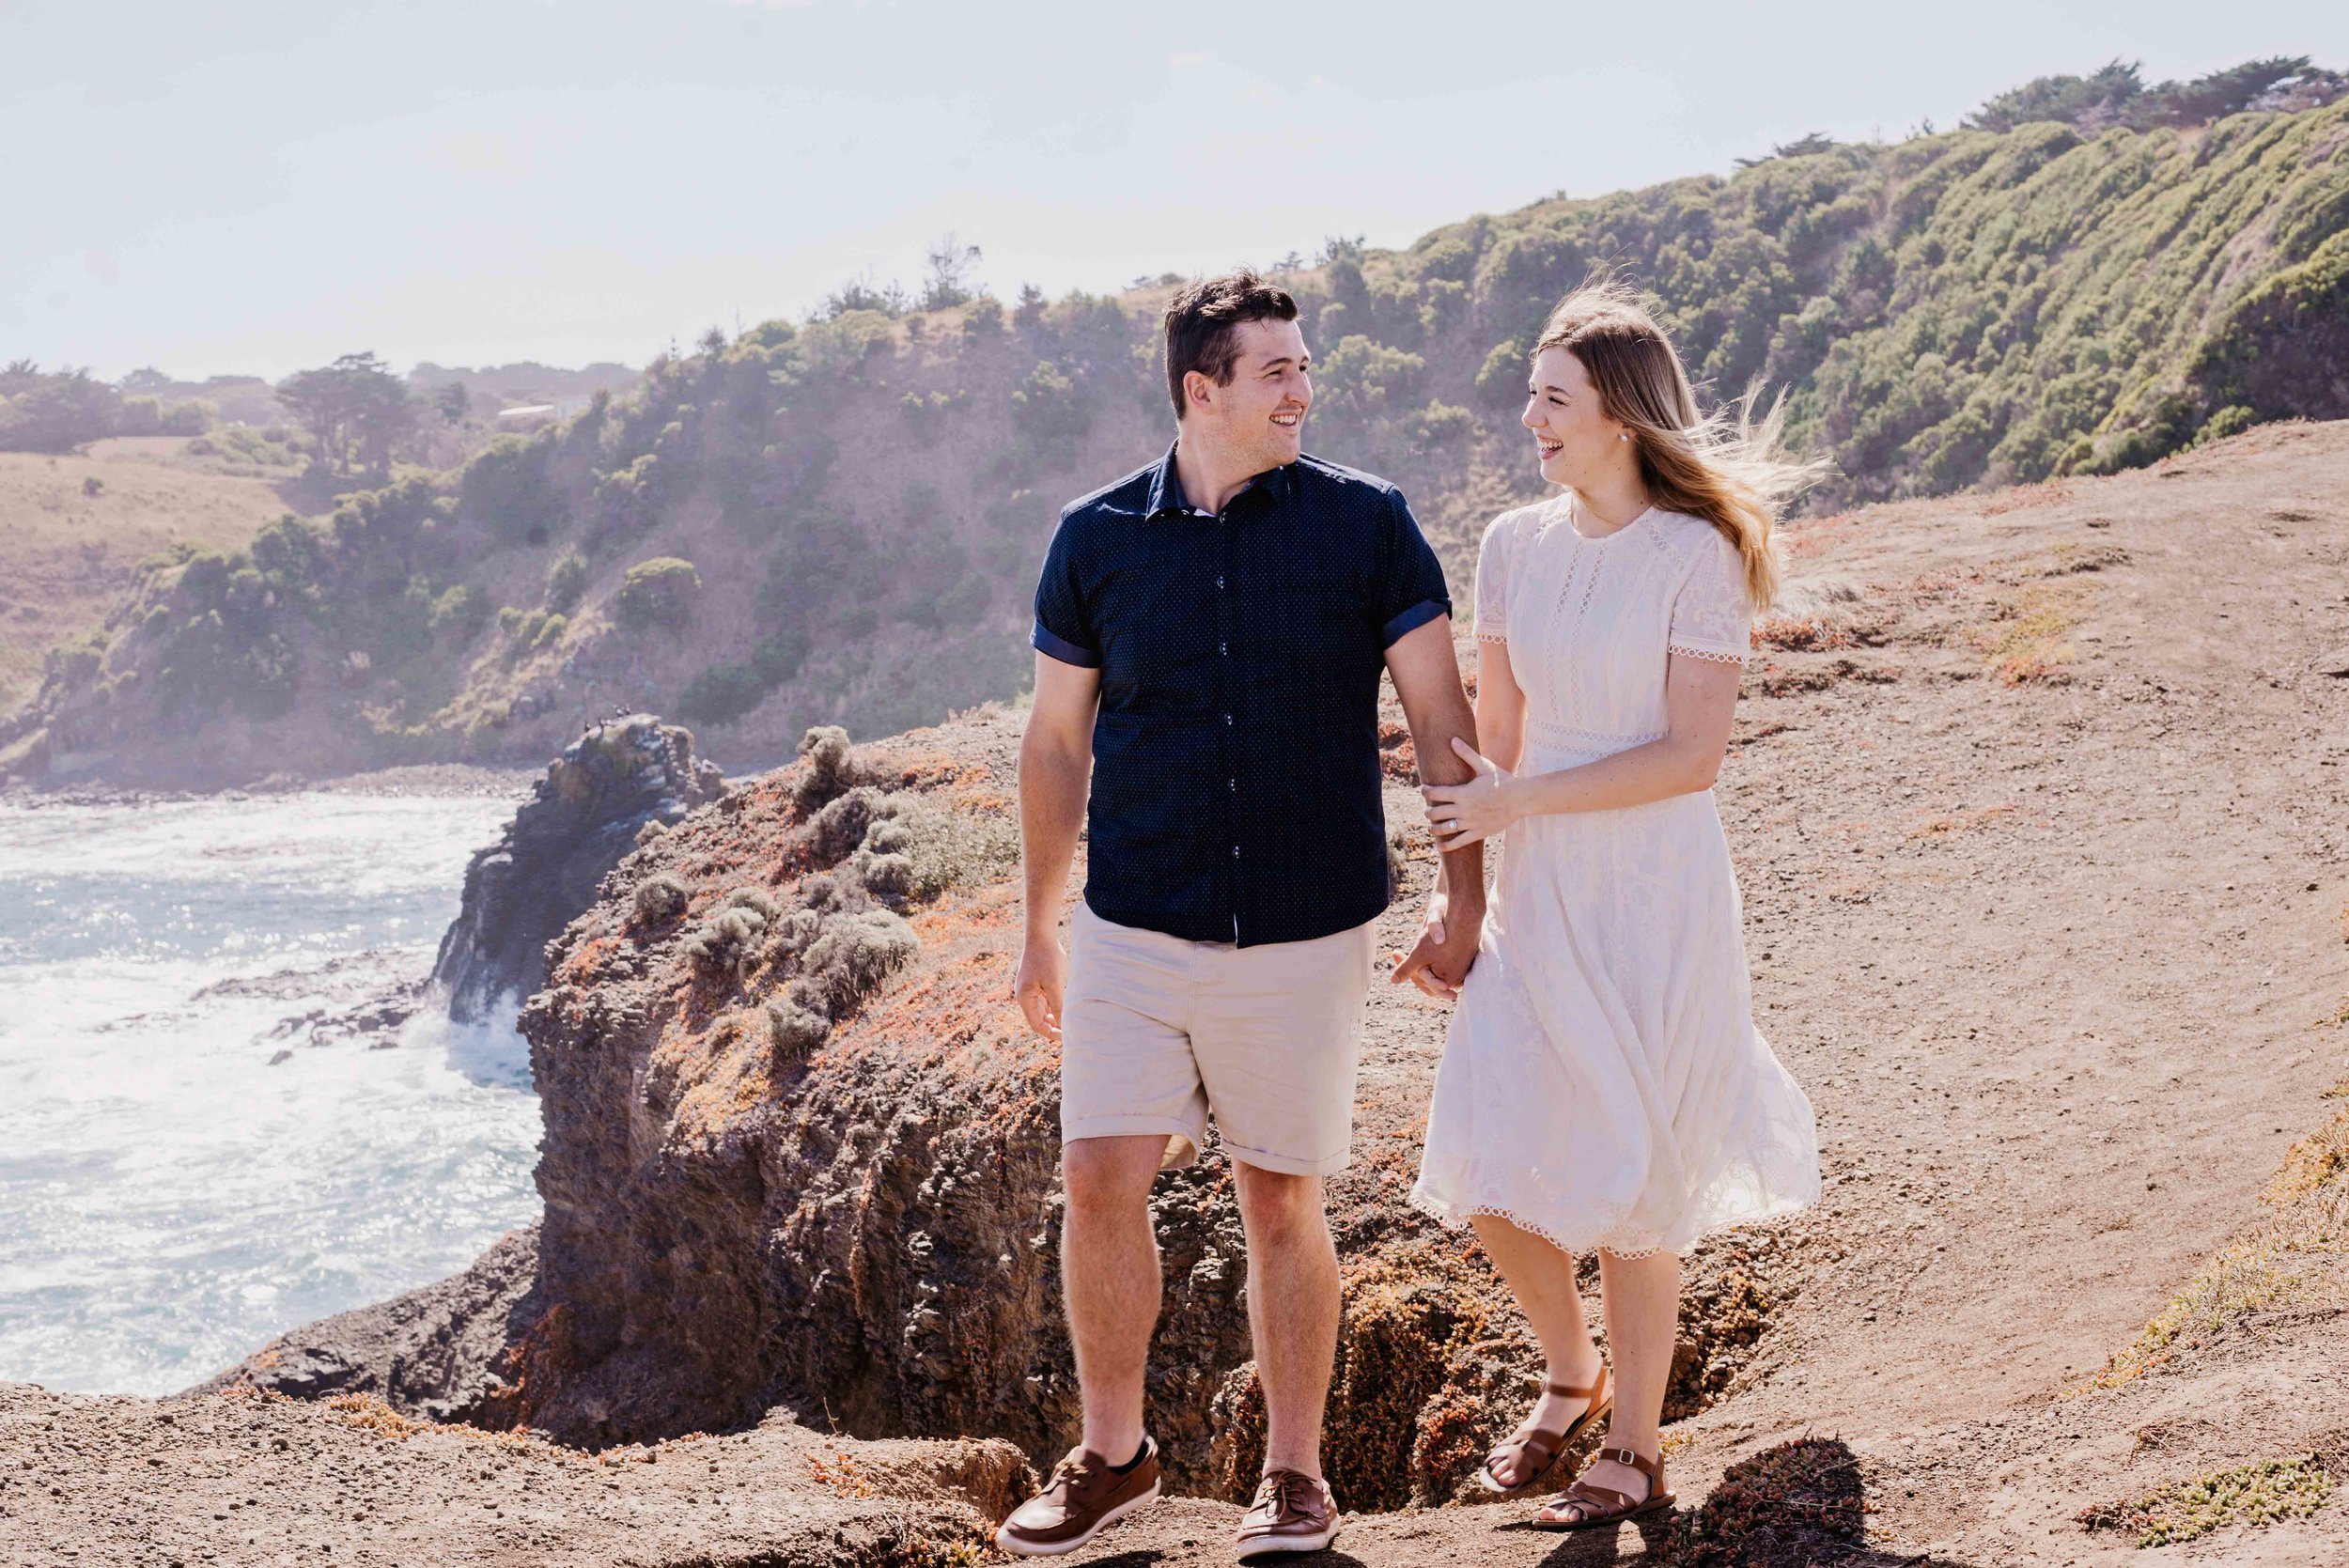 marissa-jade-photography-mornington-peninsula-wedding-photographer-natural-engagement-photography-red-hill-68.jpg